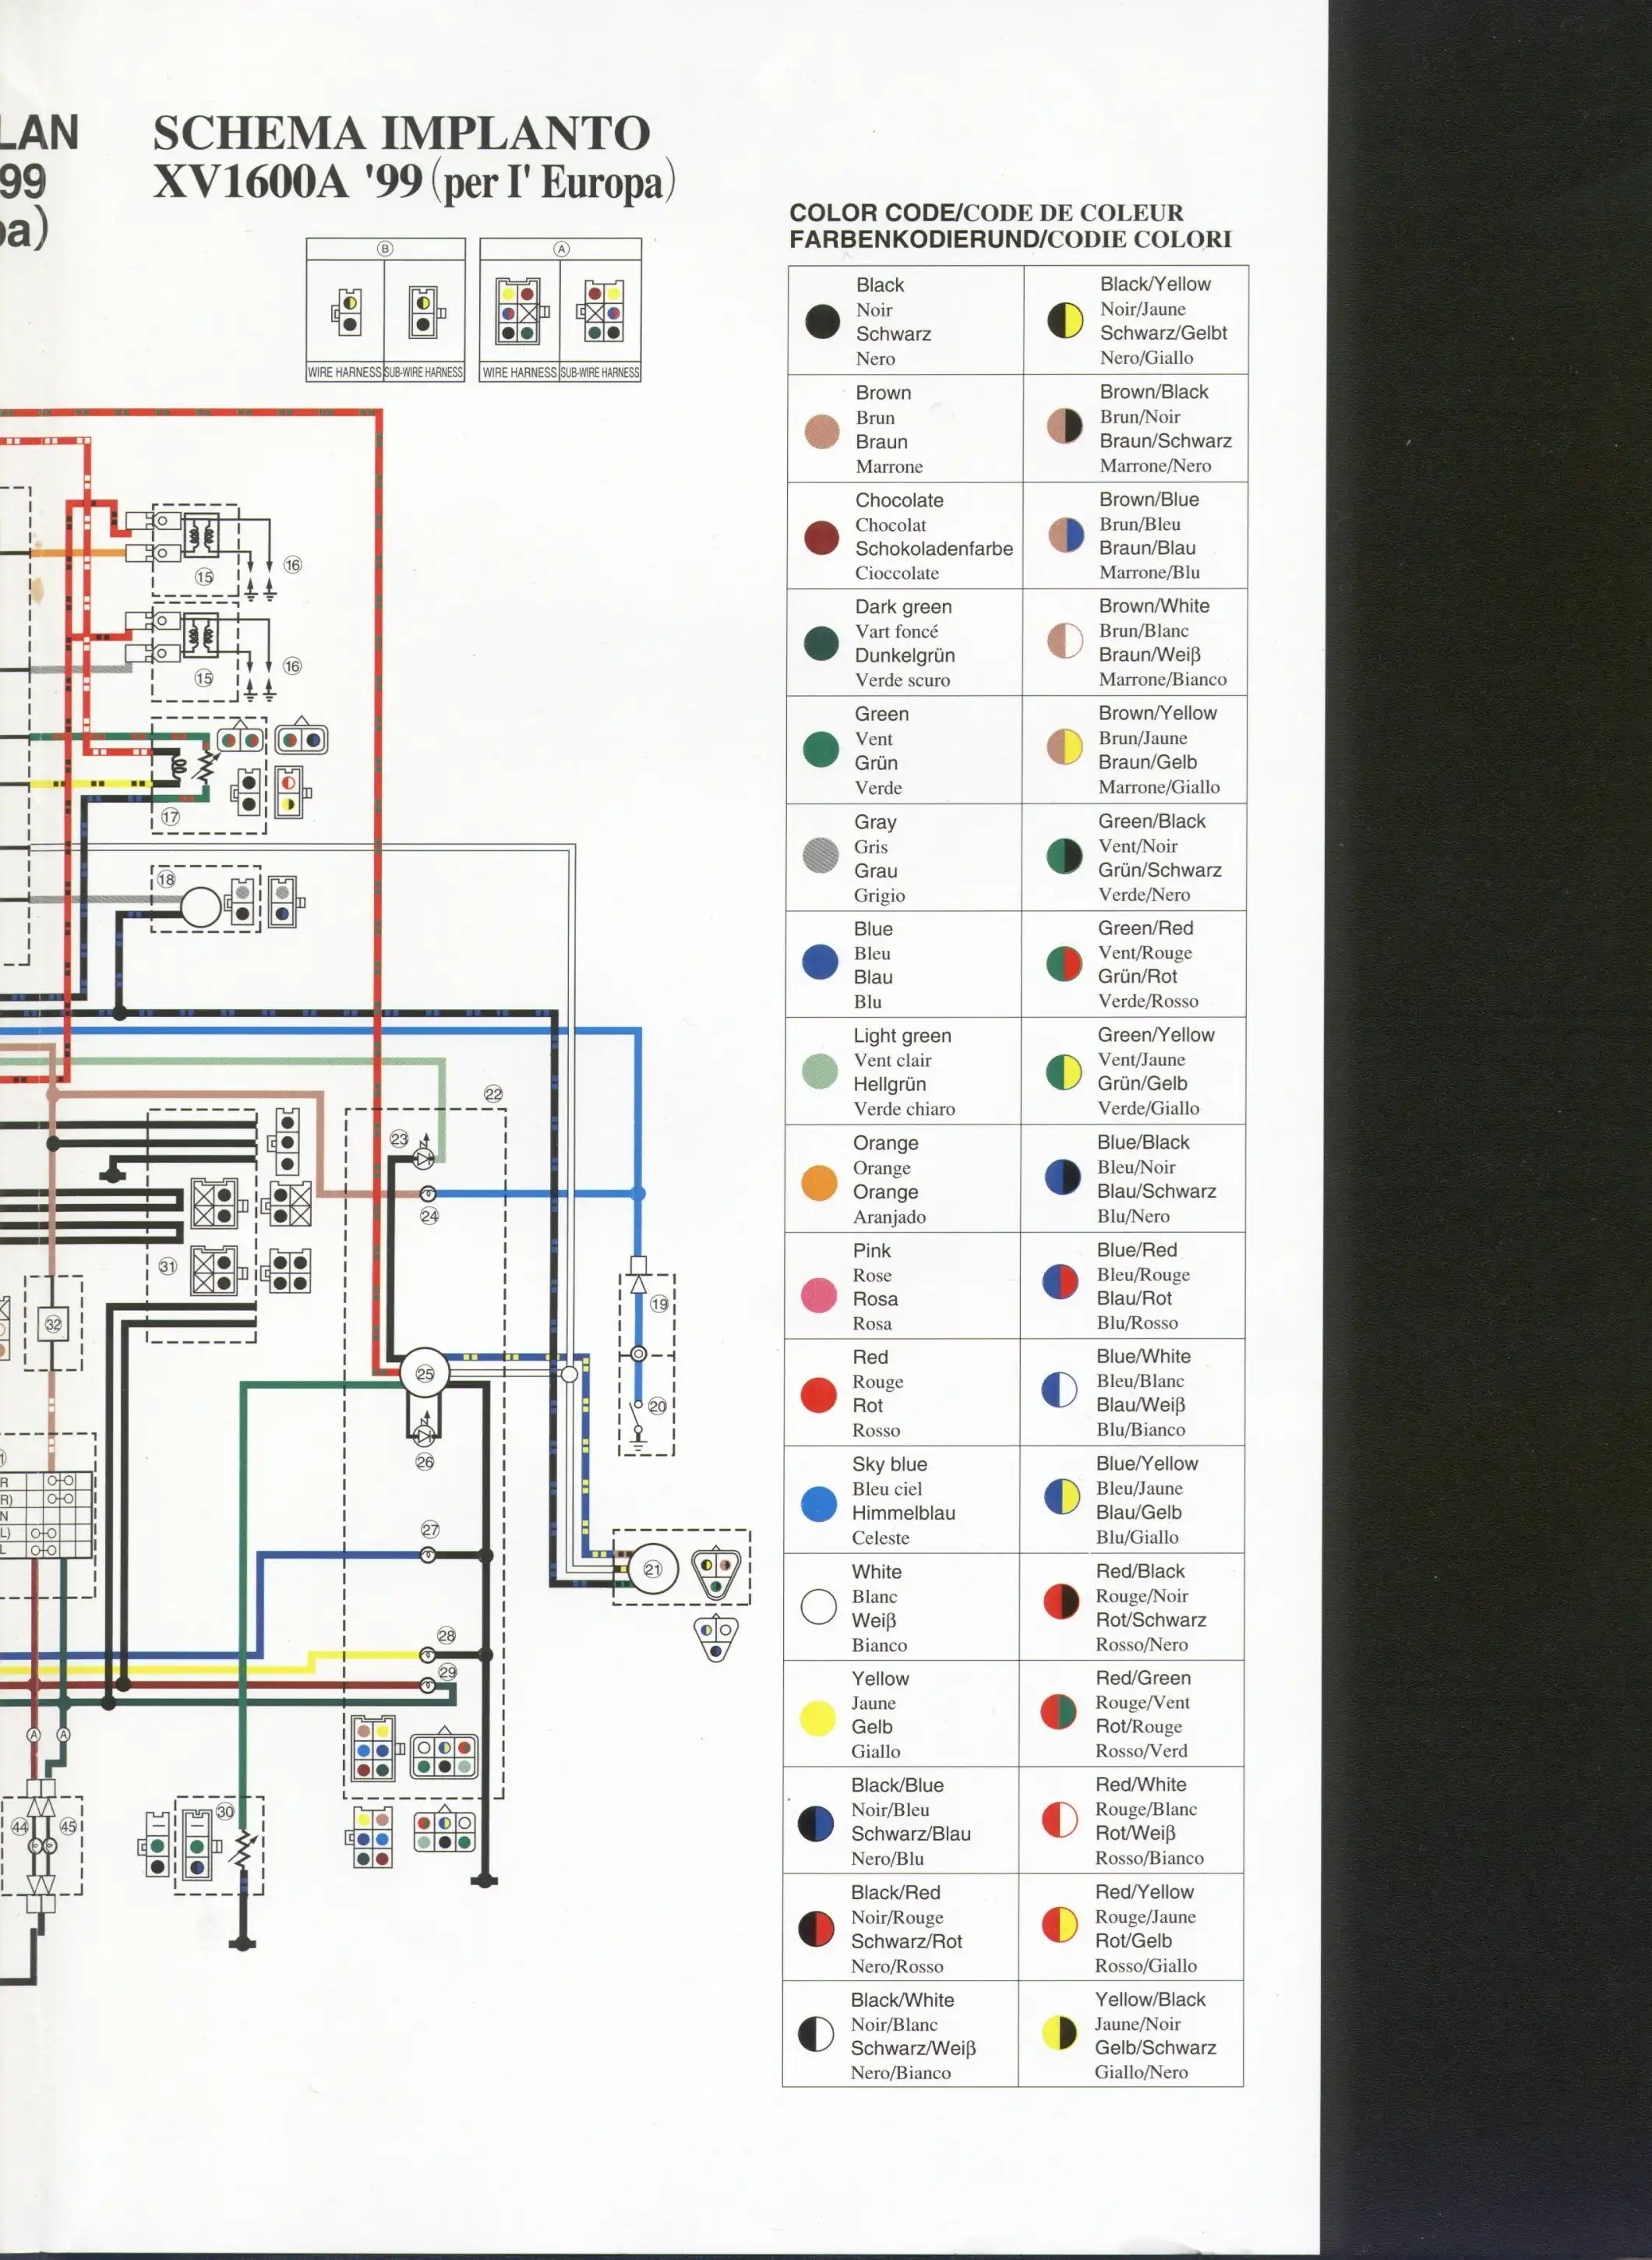 medium resolution of wiring key for xv1600 pdf file